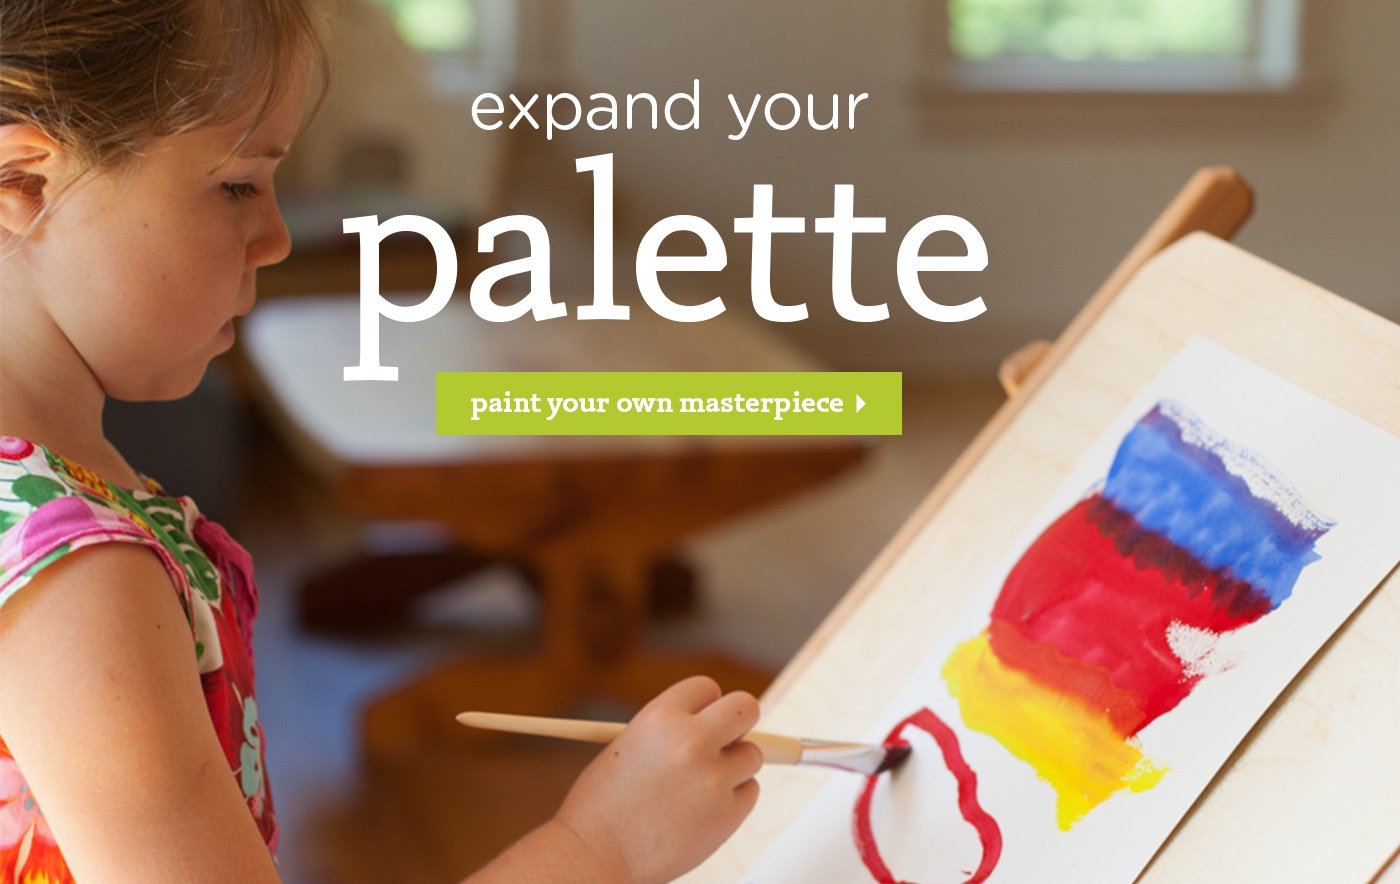 expand your palette